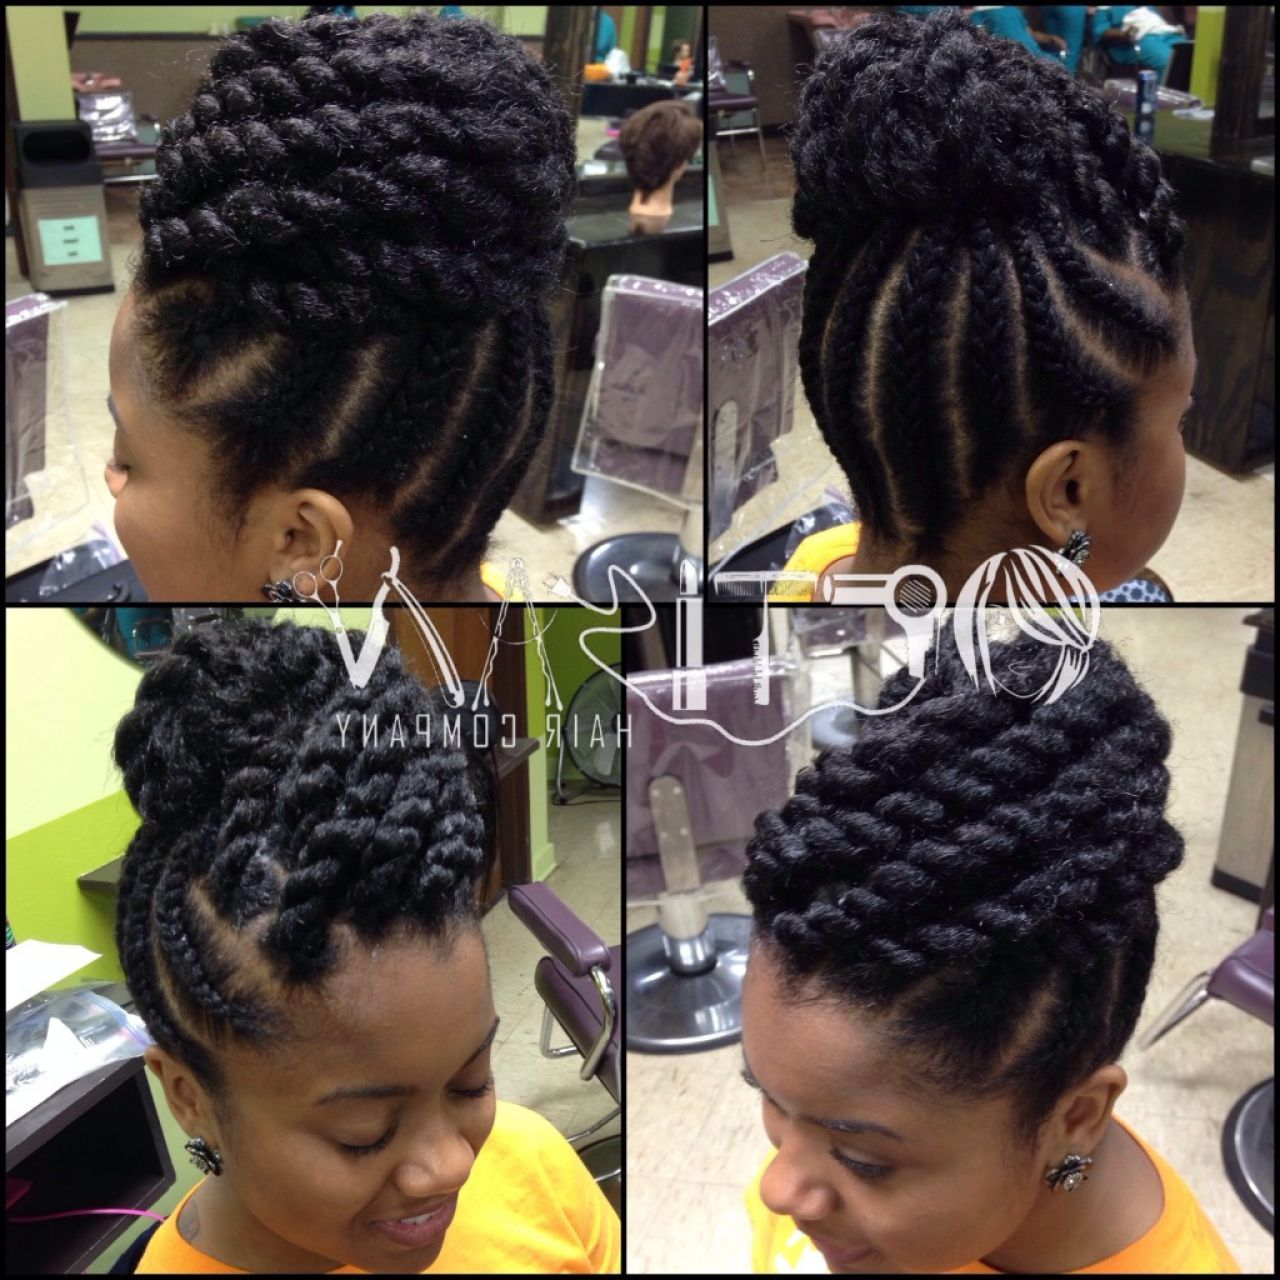 Superb 1000 Images About Hair Ideas On Pinterest Ghana Weaving Short Hairstyles For Black Women Fulllsitofus